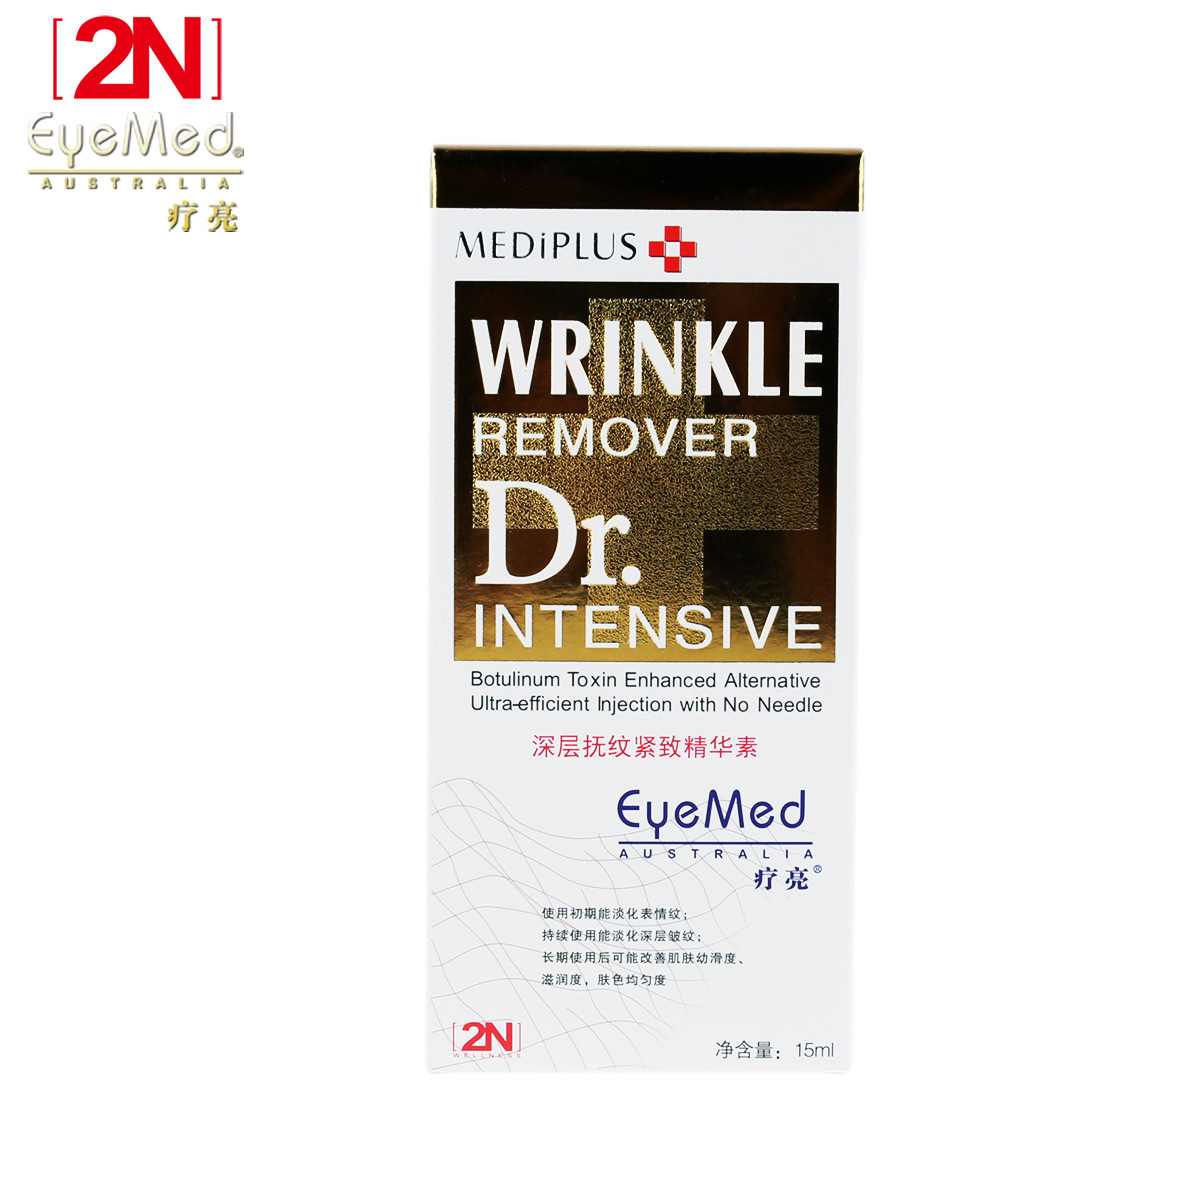 EyeMed 2N Anti Wrinkle Cream Cream Instant Wrinkle Remover Essence Effect Deep Wrinkle Treatment Best Anti Aging Product